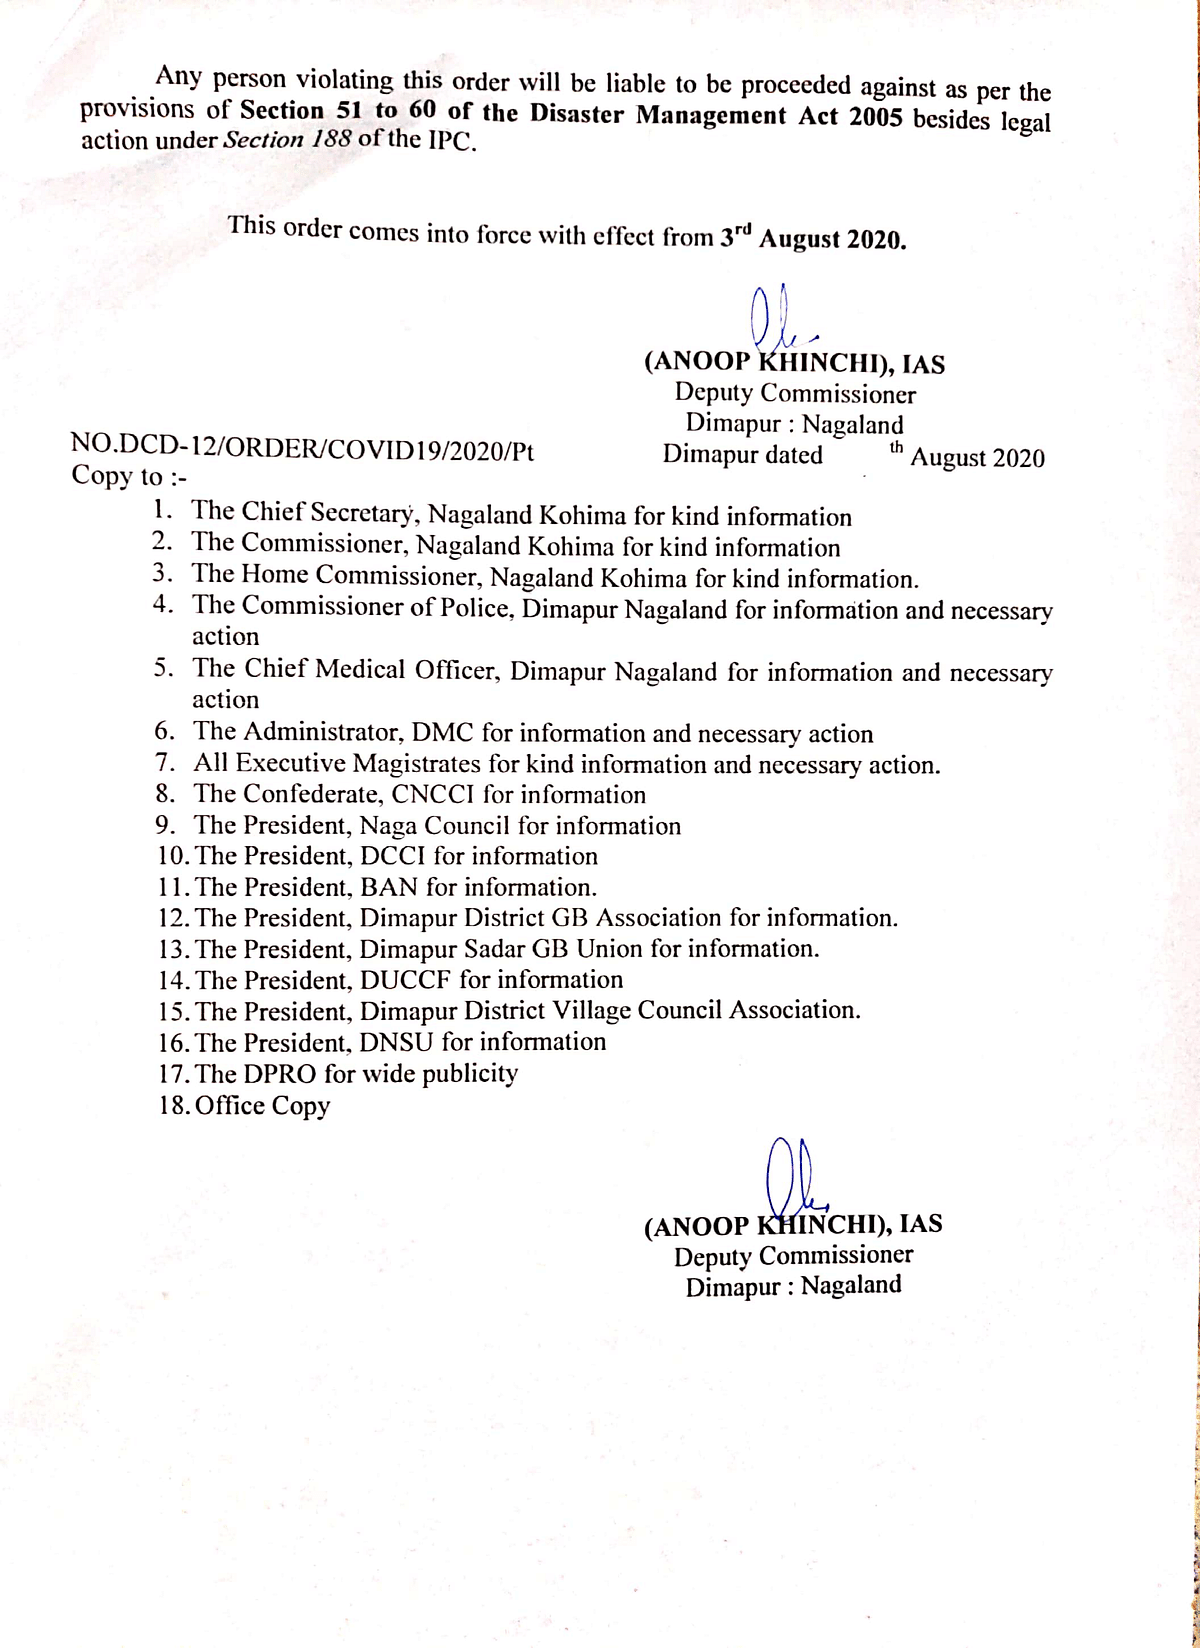 The order that was issued by the Deputy Commissioner of Dimapur on Saturday